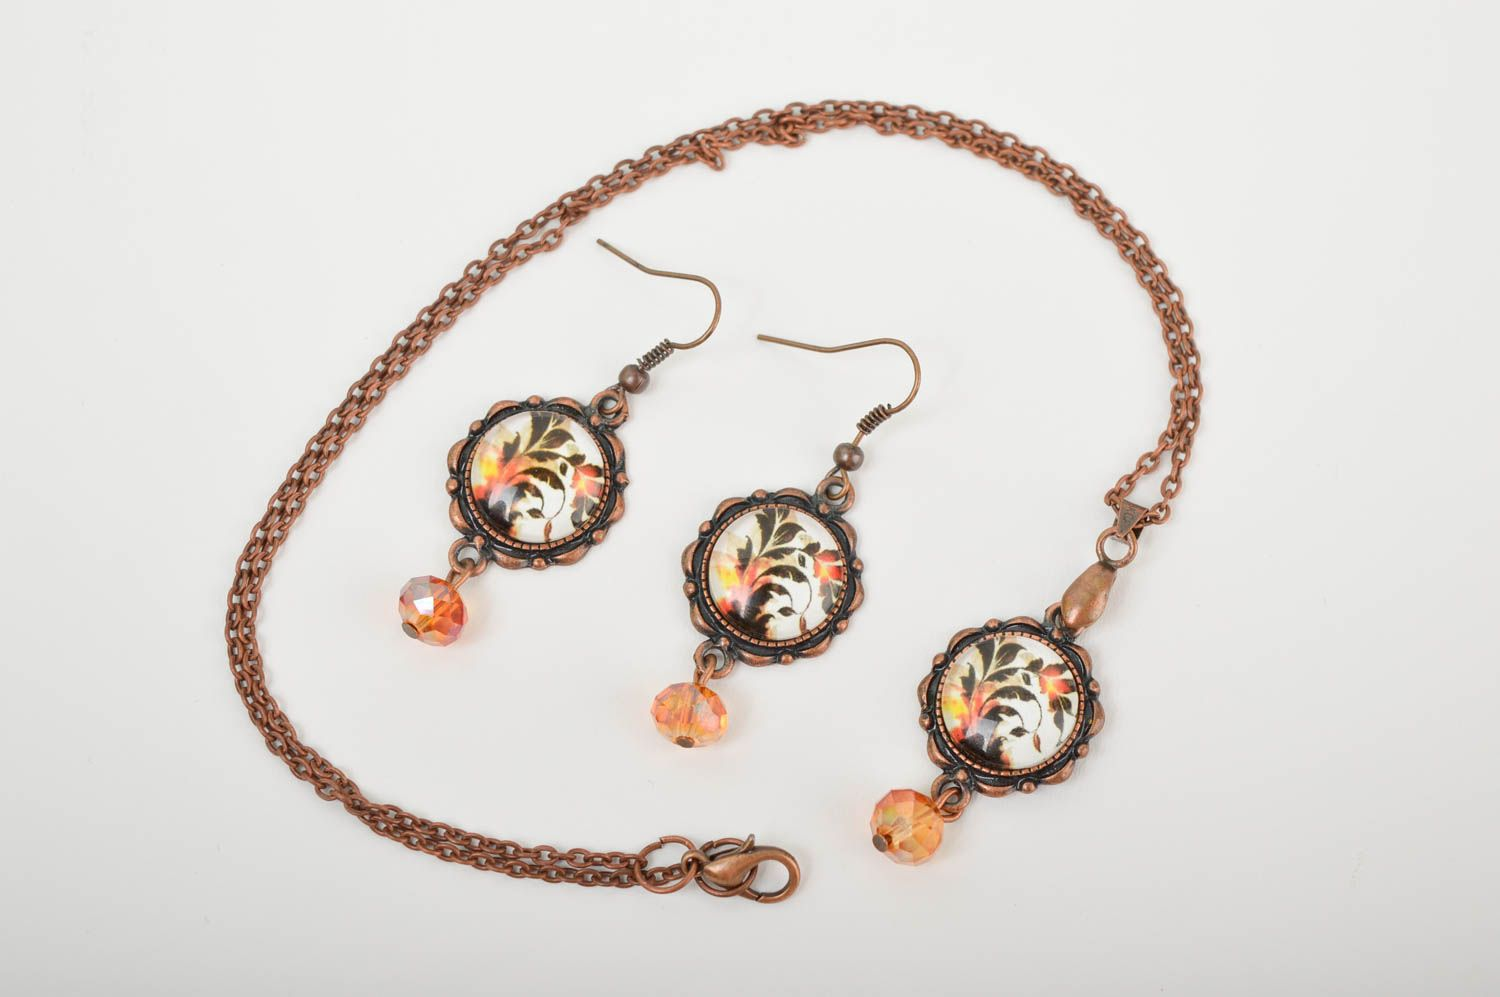 Handmade metal jewelry set glass bead earrings pendant necklace gifts for her photo 4